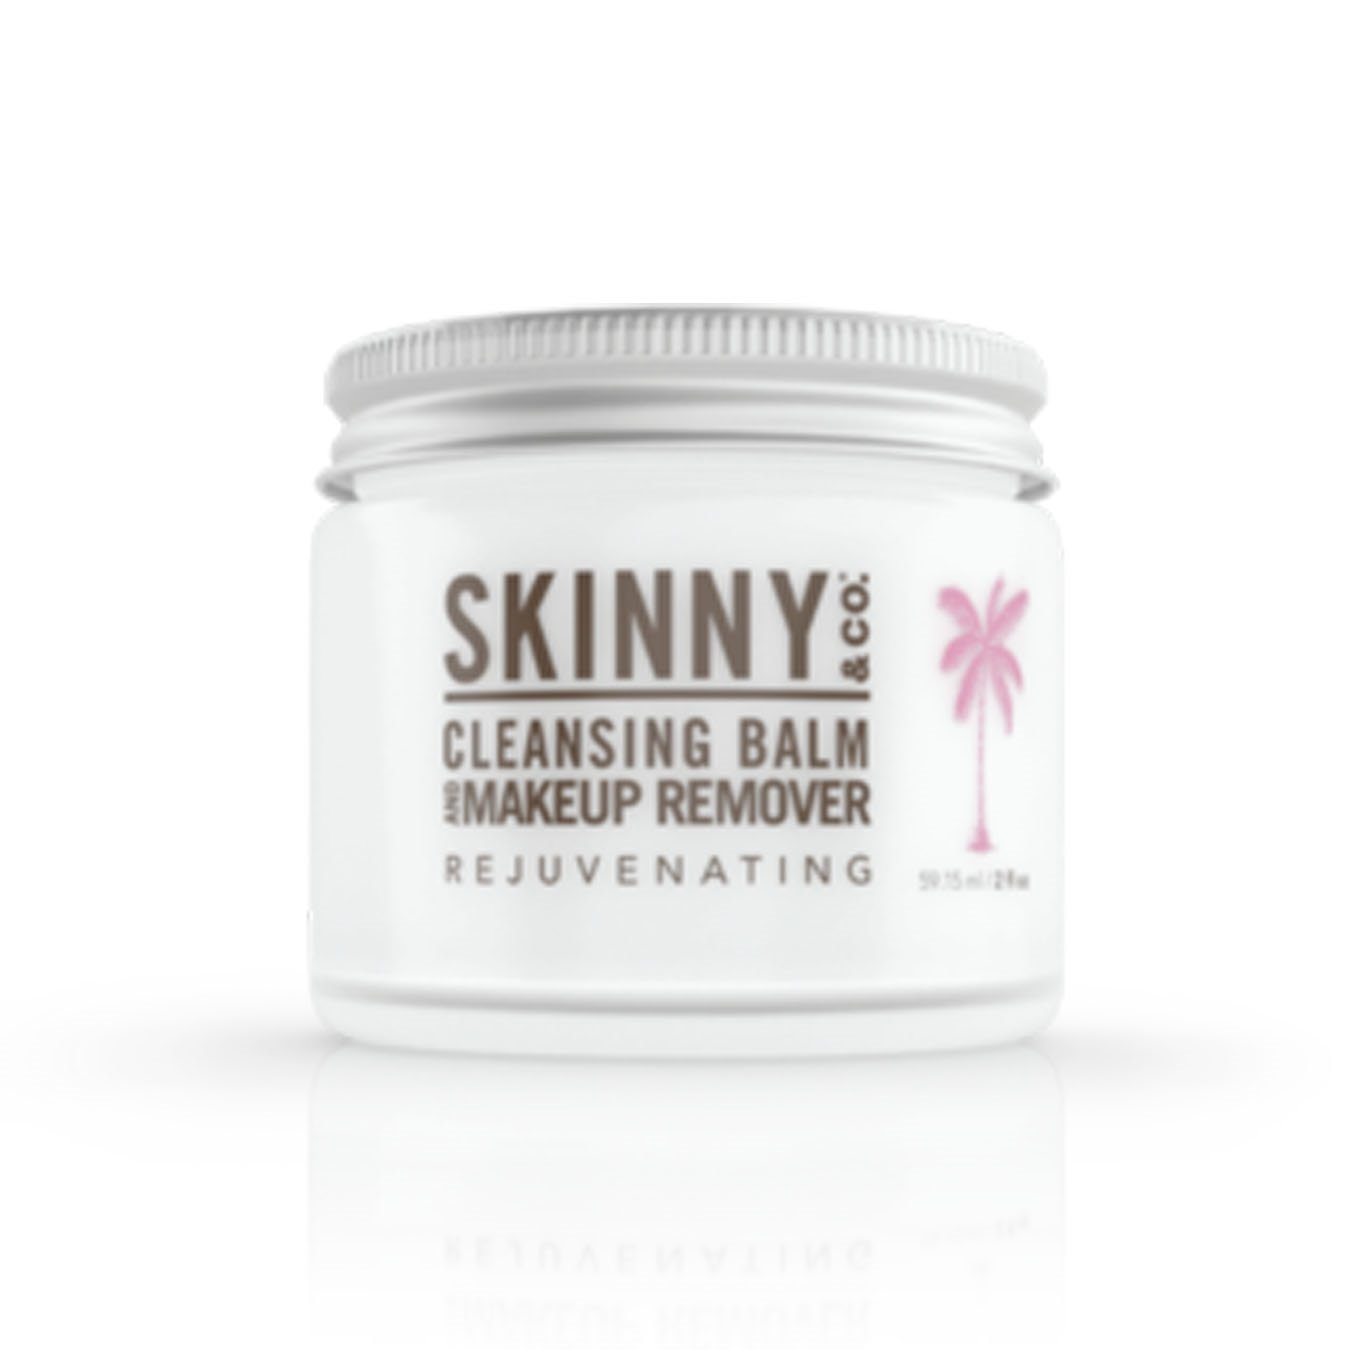 Skinny & Co. Rejuvenating Cleansing Balm/Makeup Remover (2 fl. Oz.)